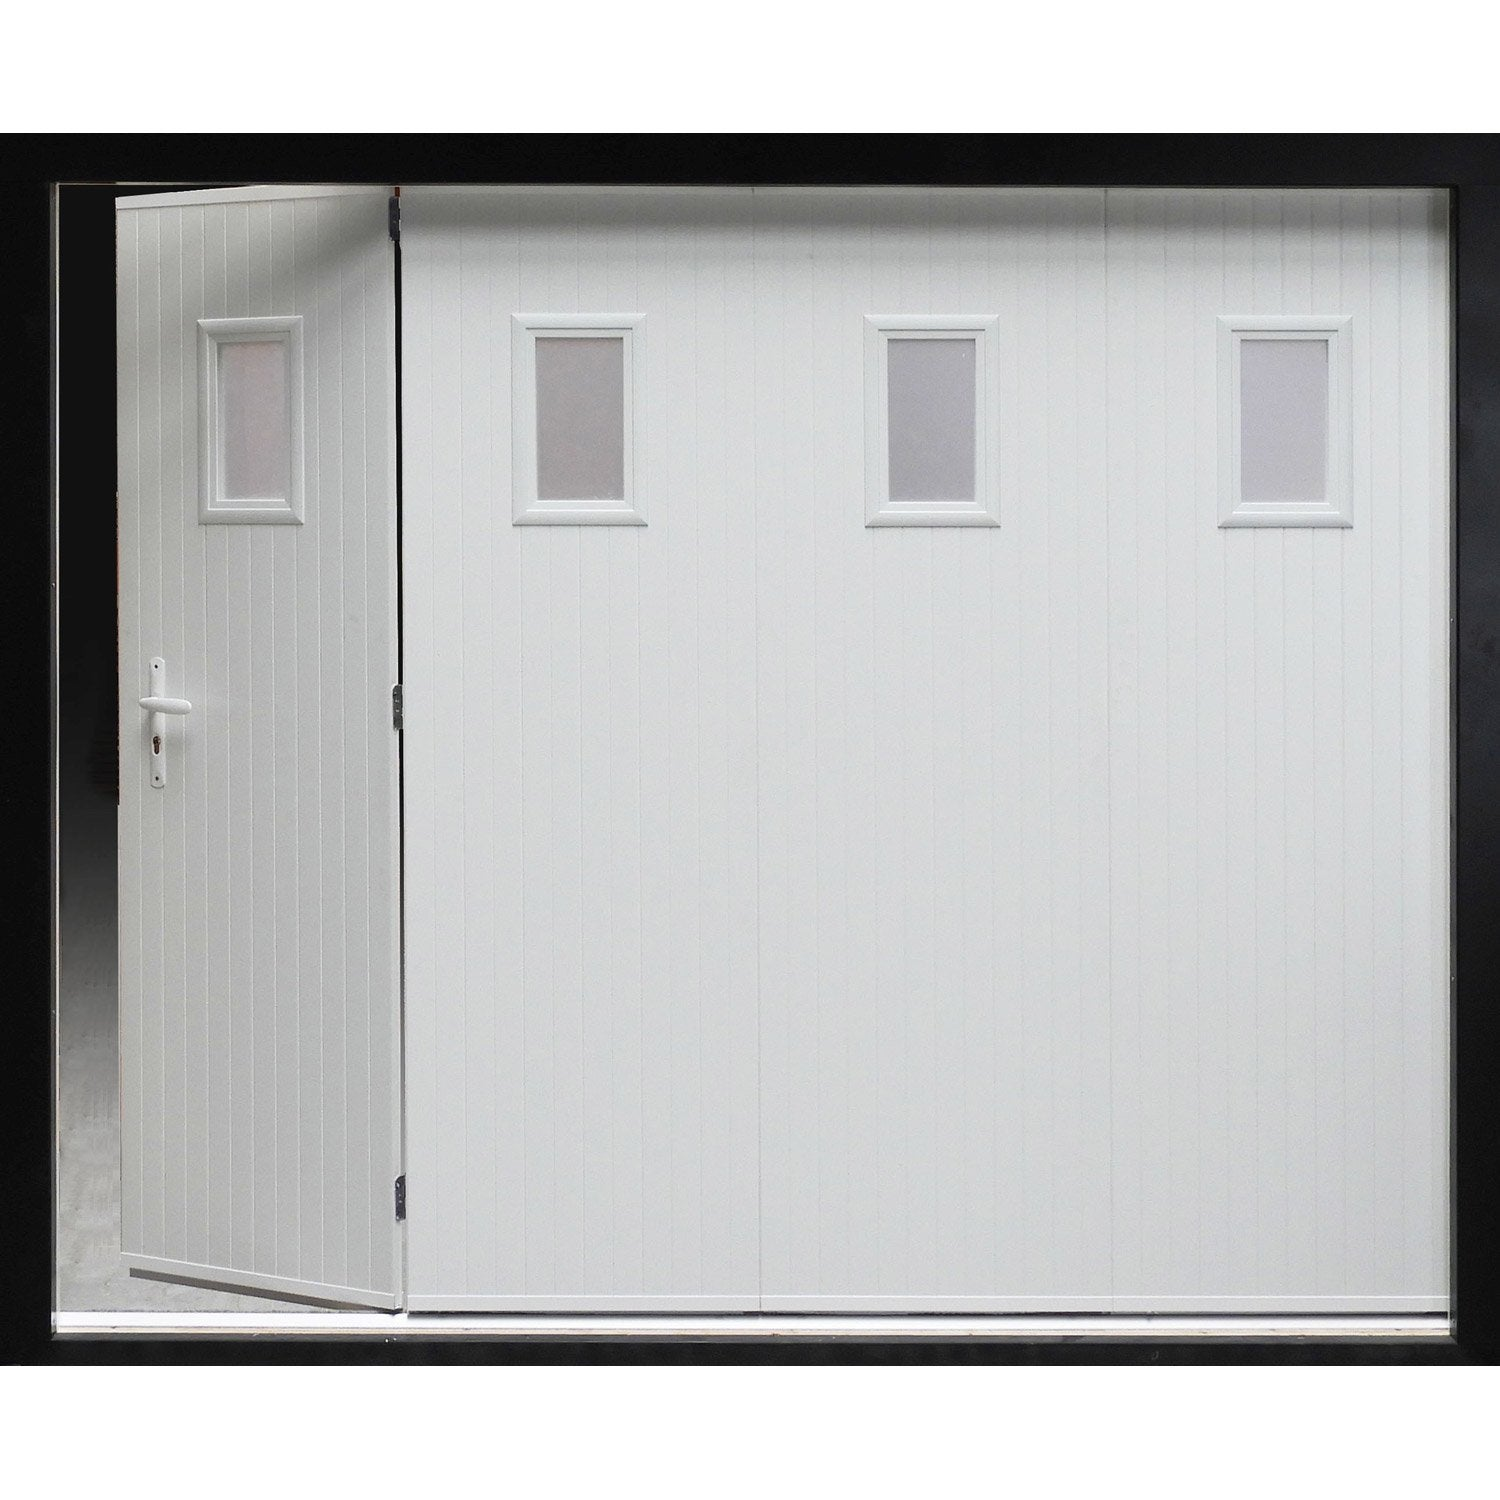 Porte de garage coulissante manuelle artens h200 x l240 for Porte de garage enroulable de plus porte coulissante